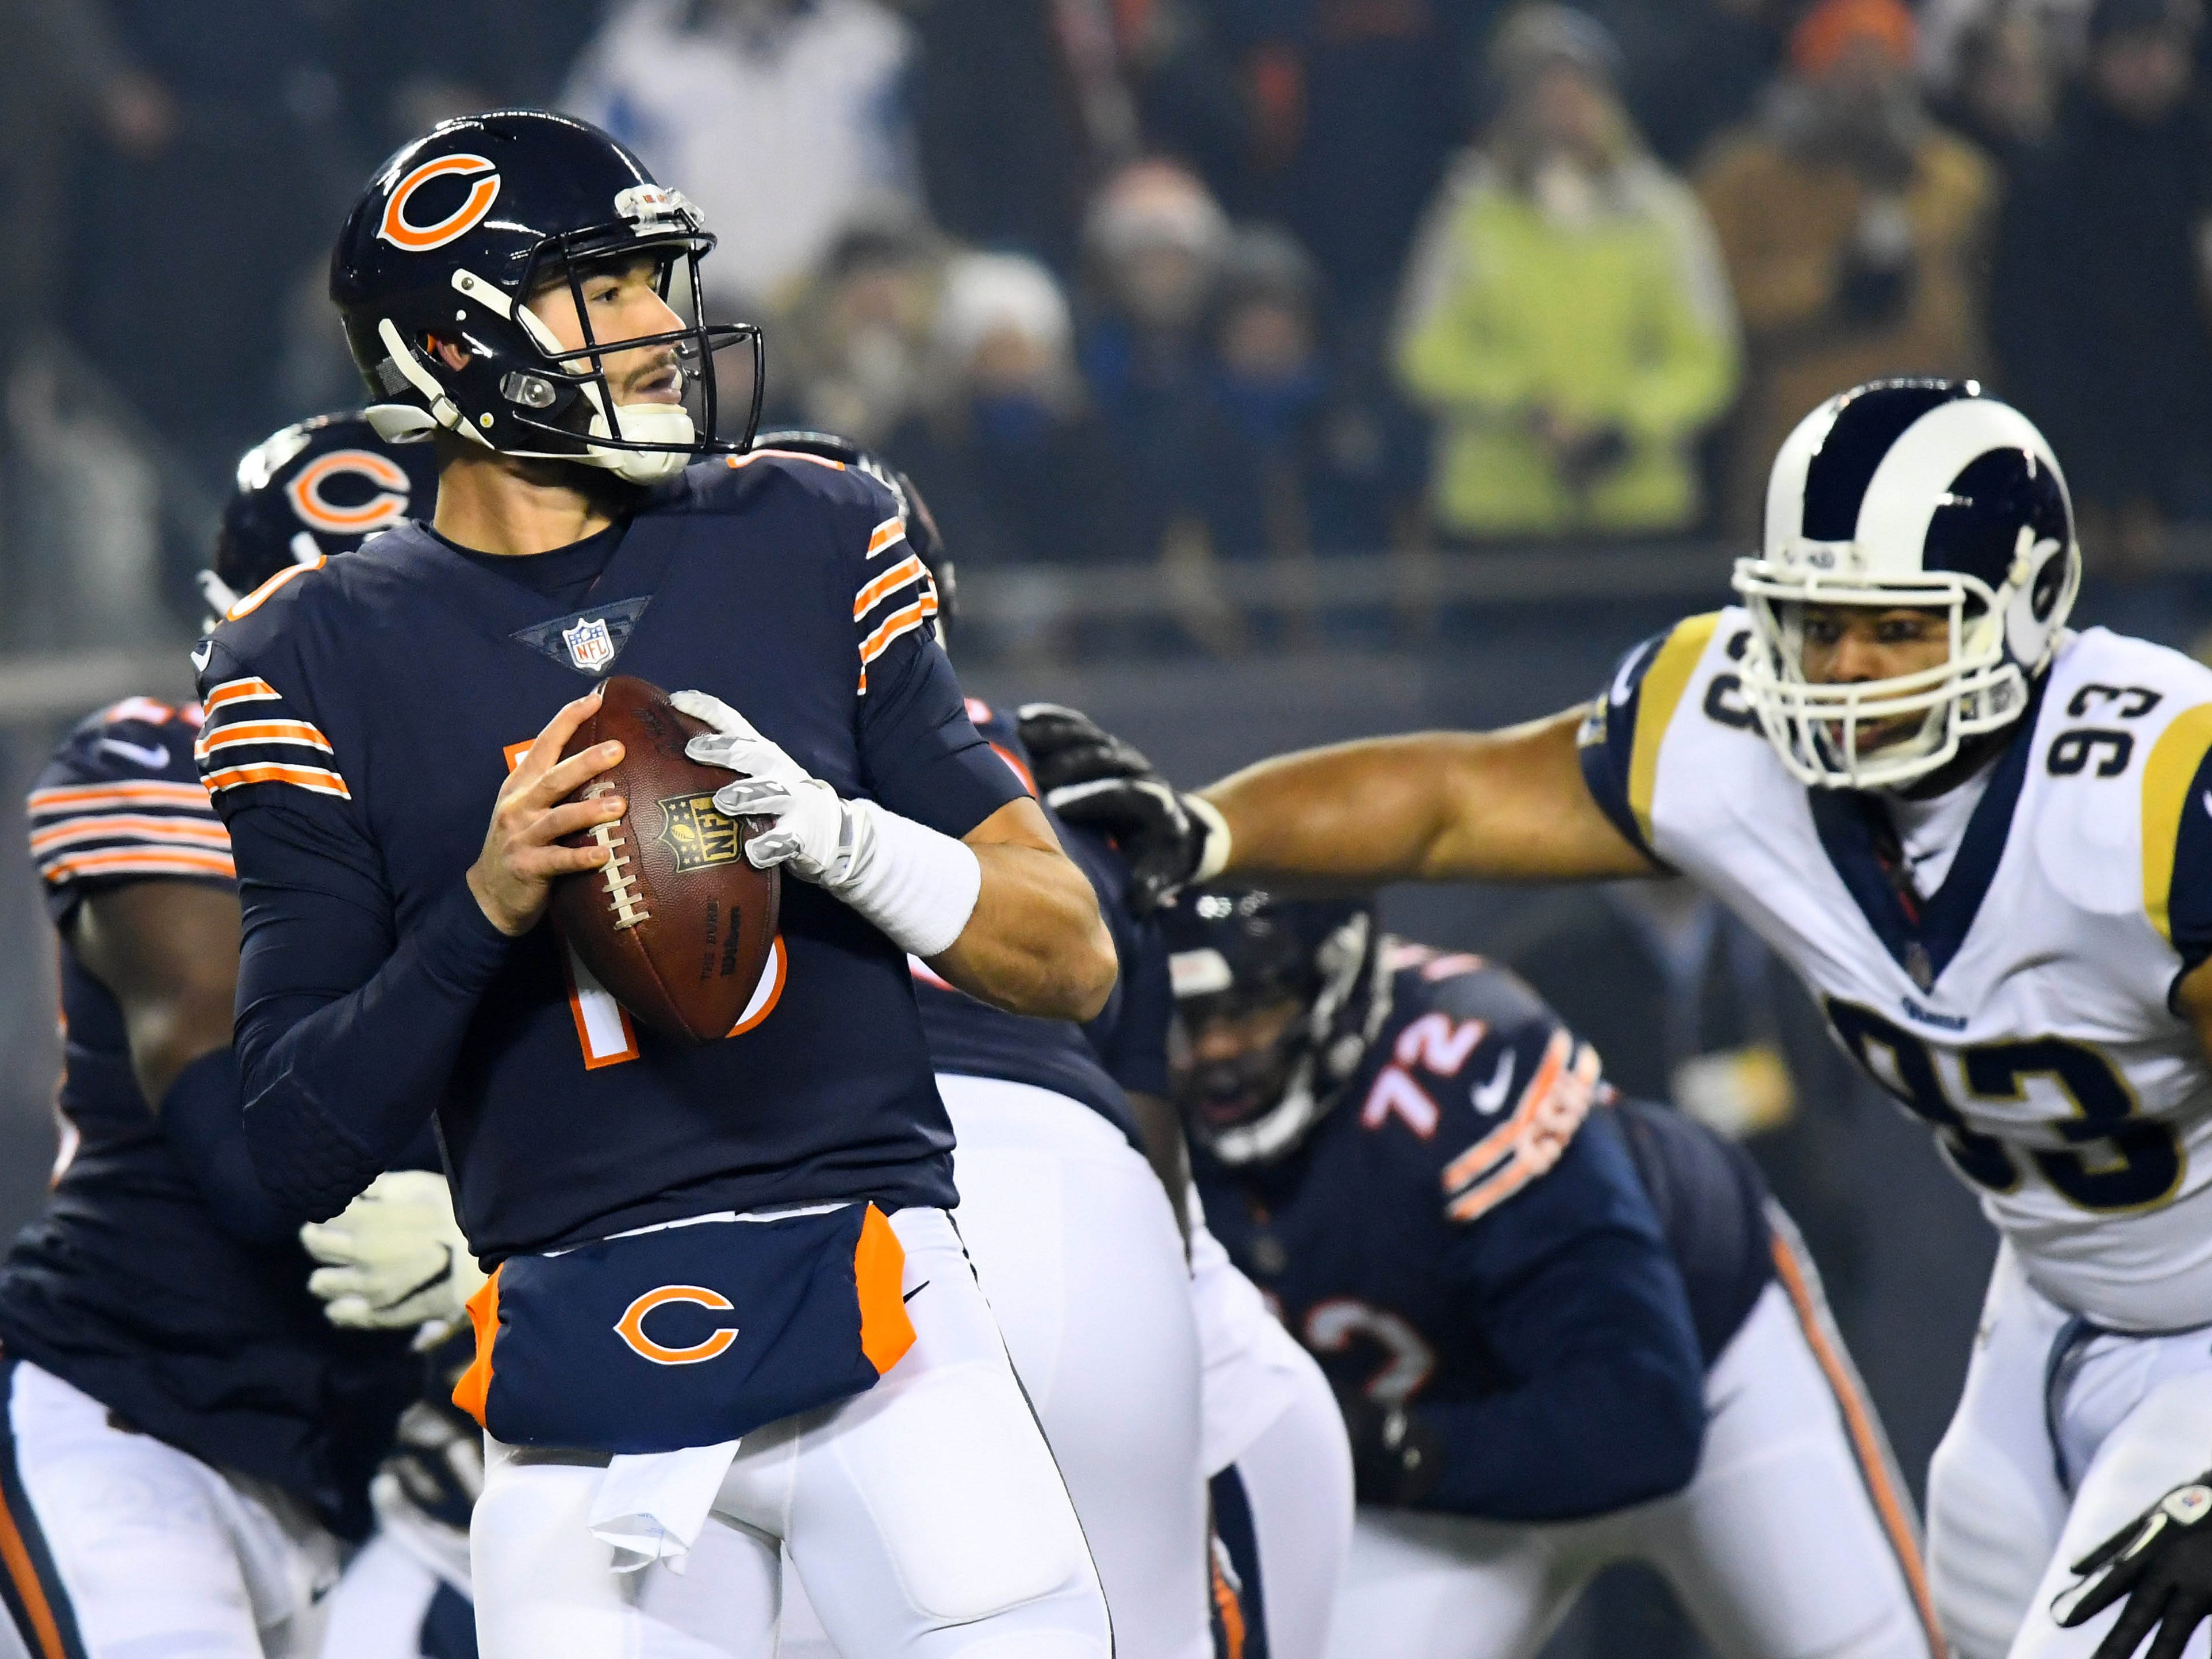 Chicago Bears quarterback Mitchell Trubisky drops back to pass against the Los Angeles Rams during the first quarter at Soldier Field.